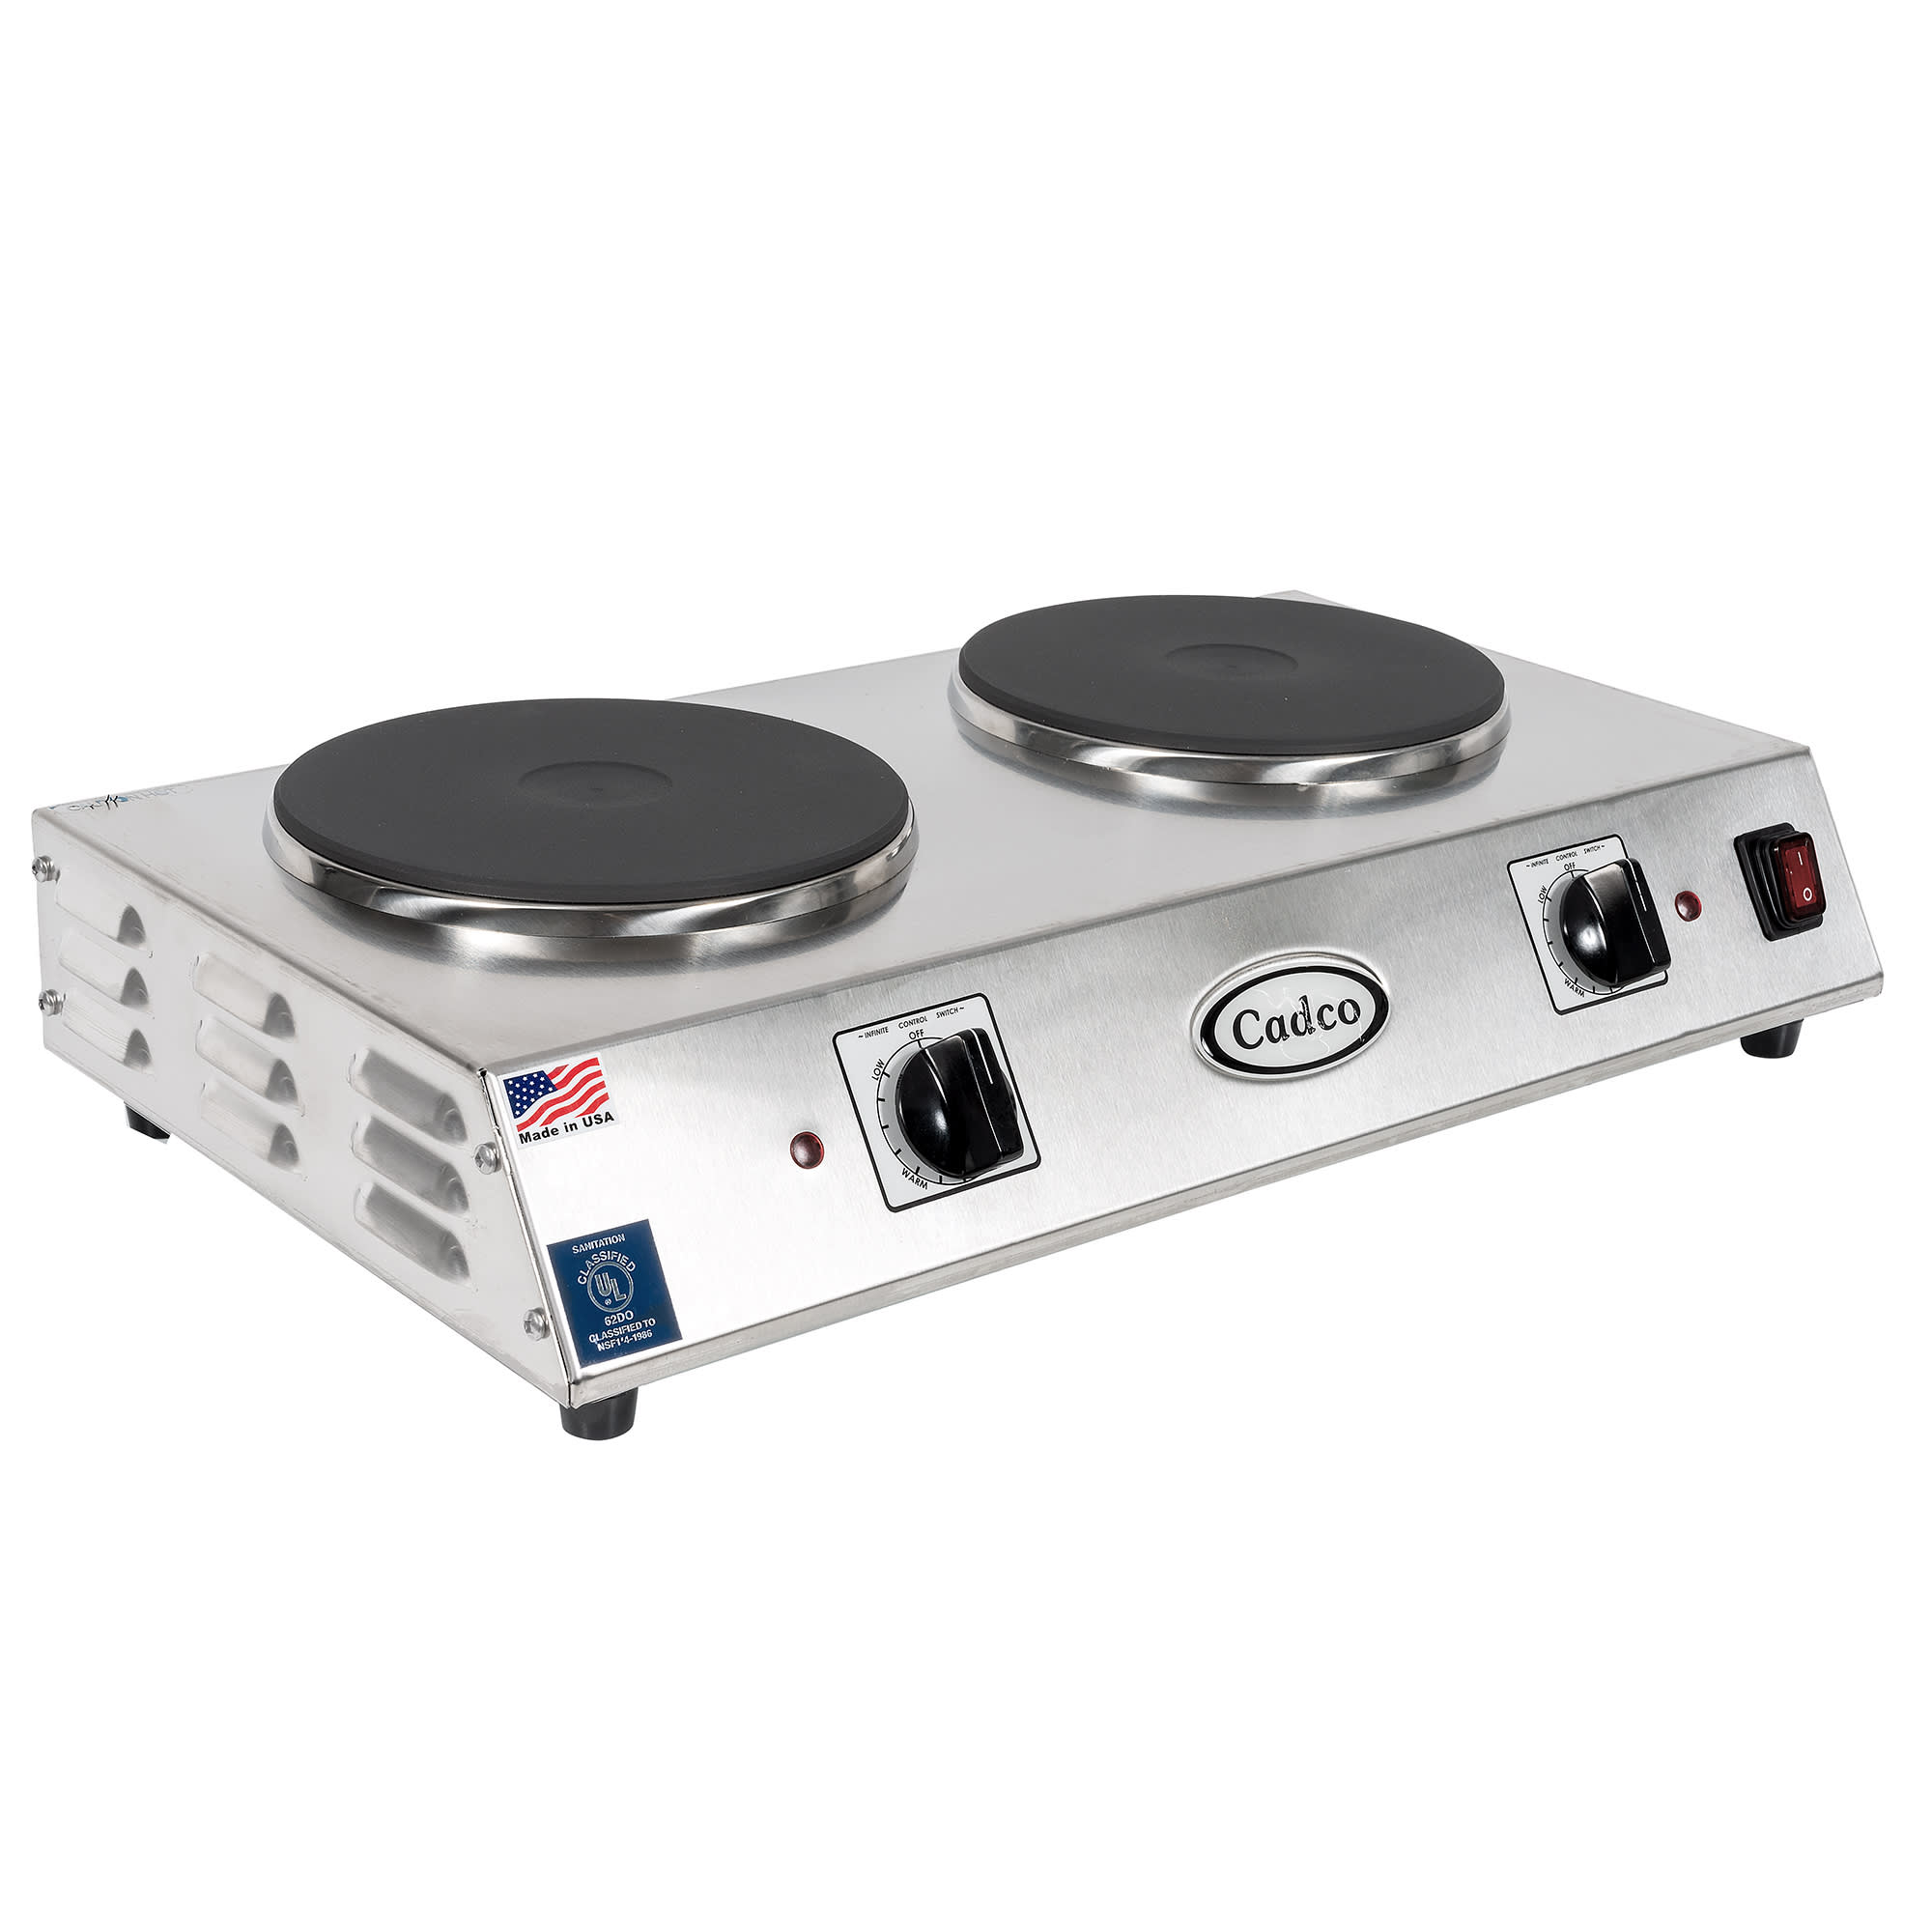 Cadco CDR-2C 21.25 Electric Hot Plate w/ (2) Burners & In...